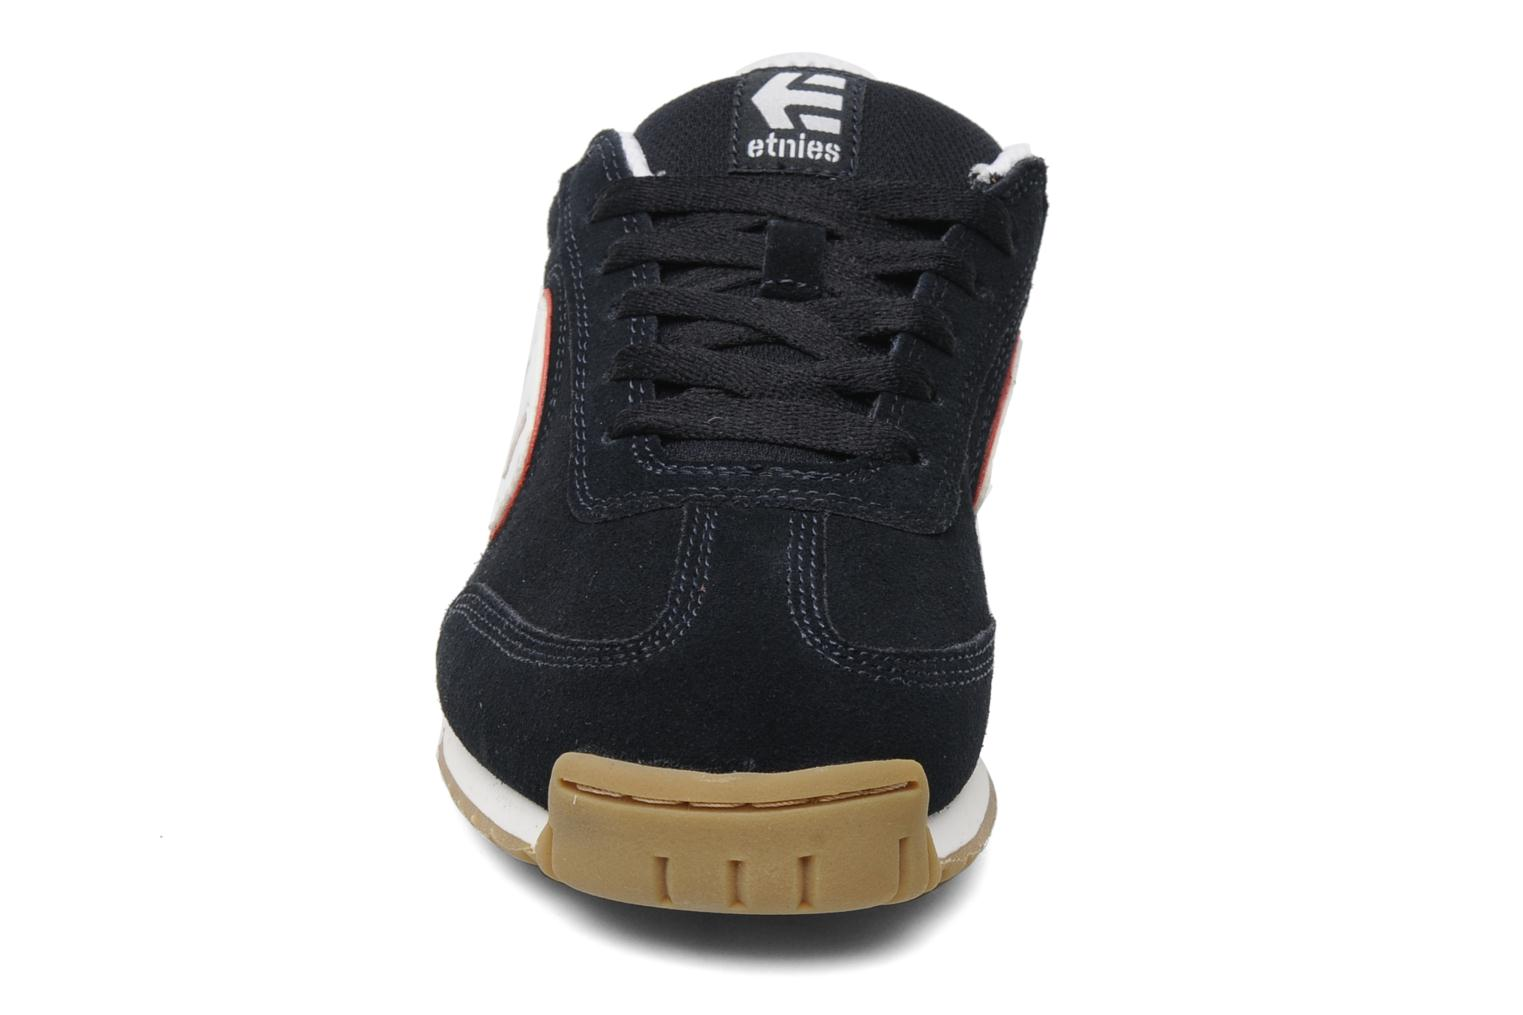 etnies lo cut 2 bleu chaussures de sport chez sarenza 116553. Black Bedroom Furniture Sets. Home Design Ideas